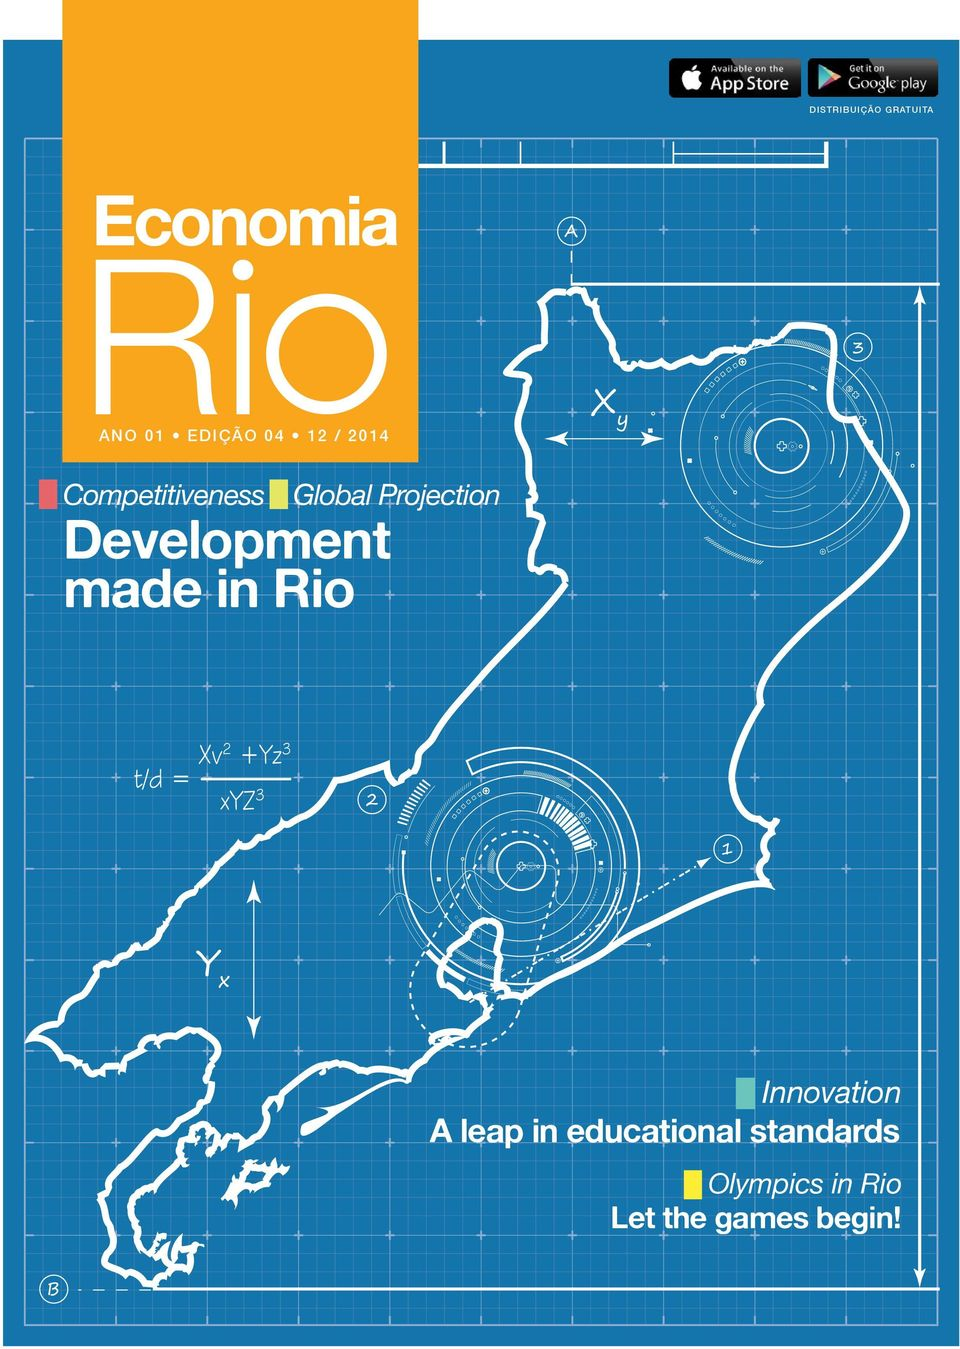 Development made in Rio Innovation A leap in